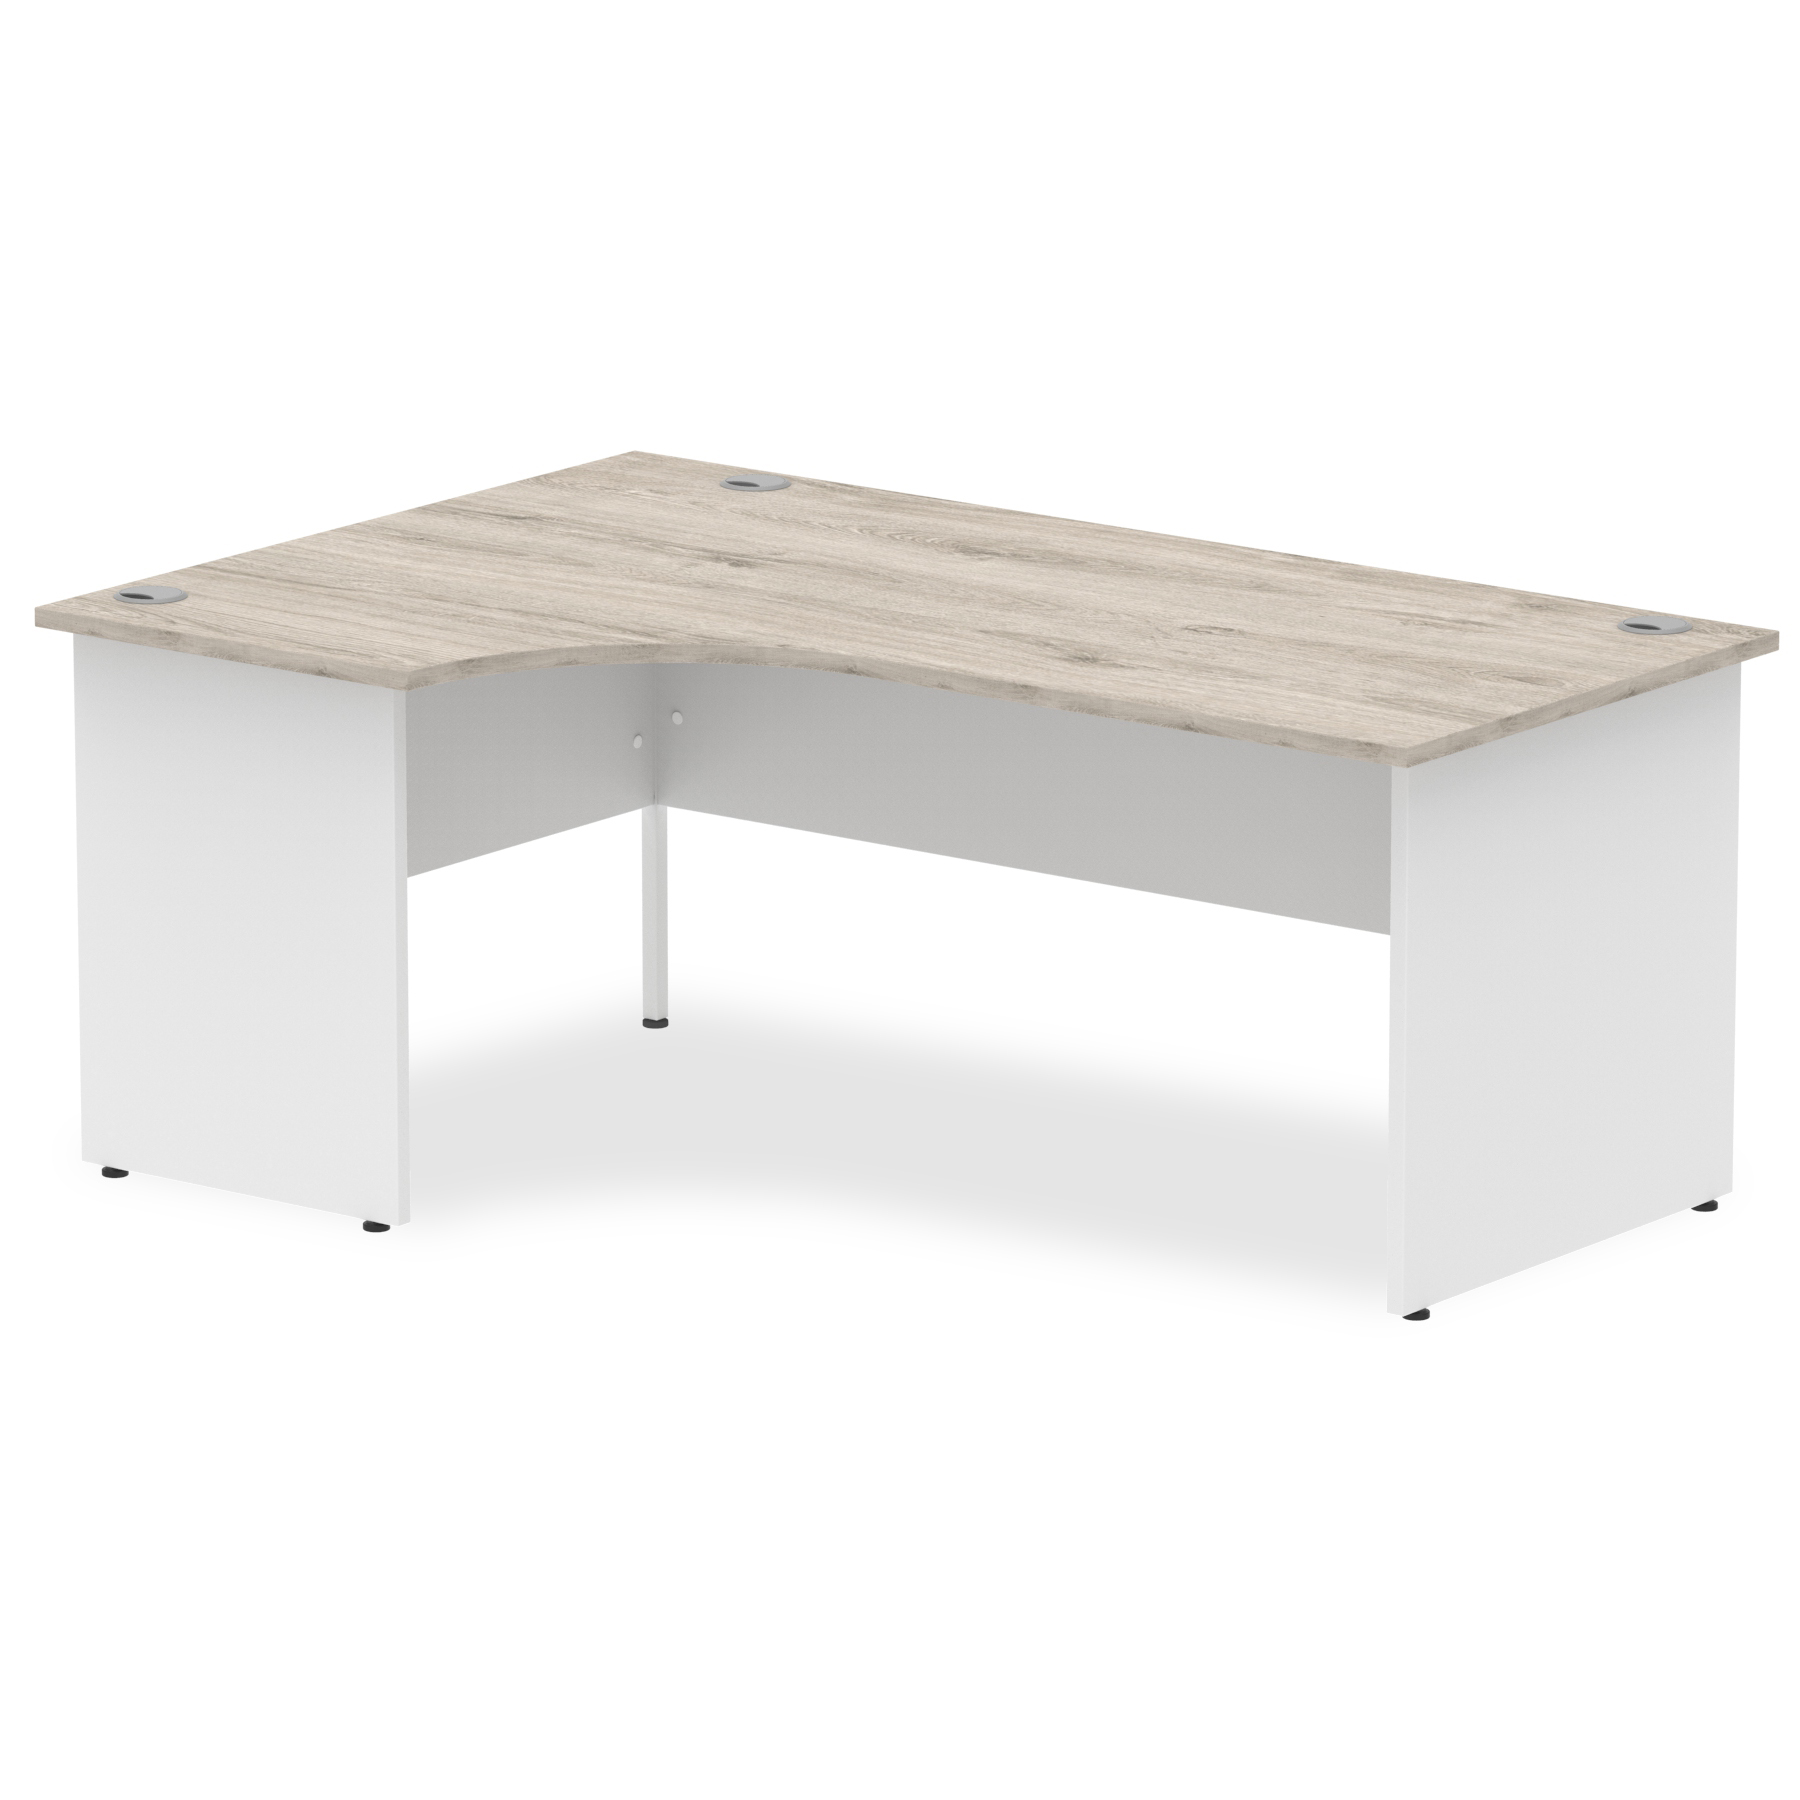 Desks Trexus Radial Desk Left Hand Panel End Leg 1800/800mm Grey Oak/White Ref TT000163